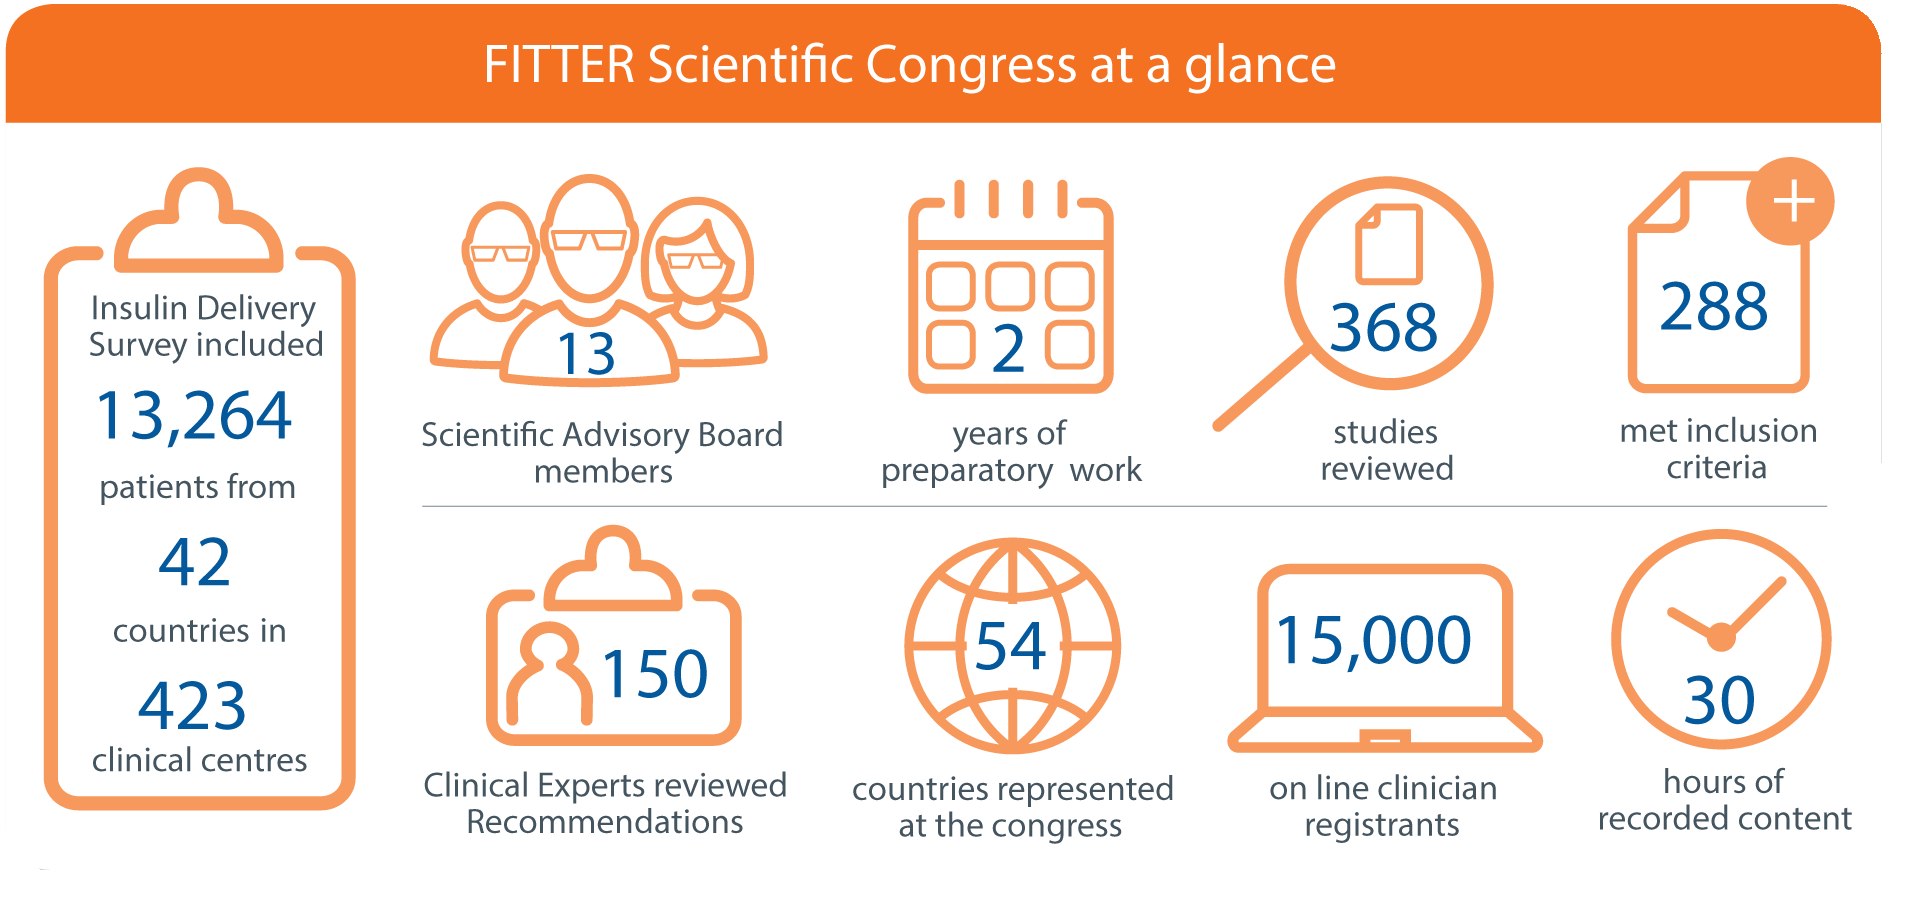 FITTER Scientific Congress at a glance